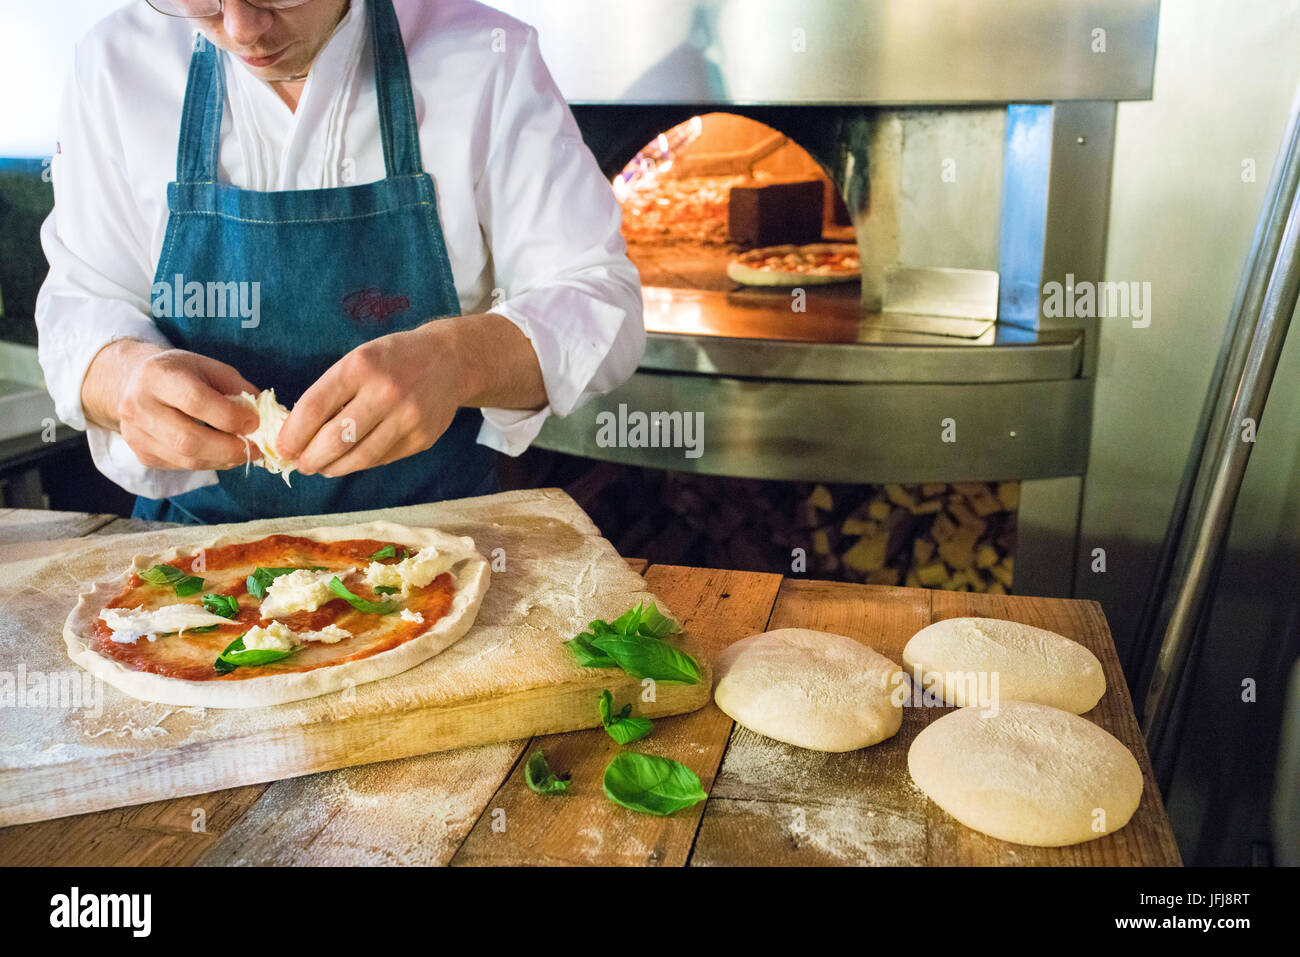 The chef fills the pizza with tomato sauce and mozzarella cheese then ready to be cooked in the wood oven Italy - Stock Image